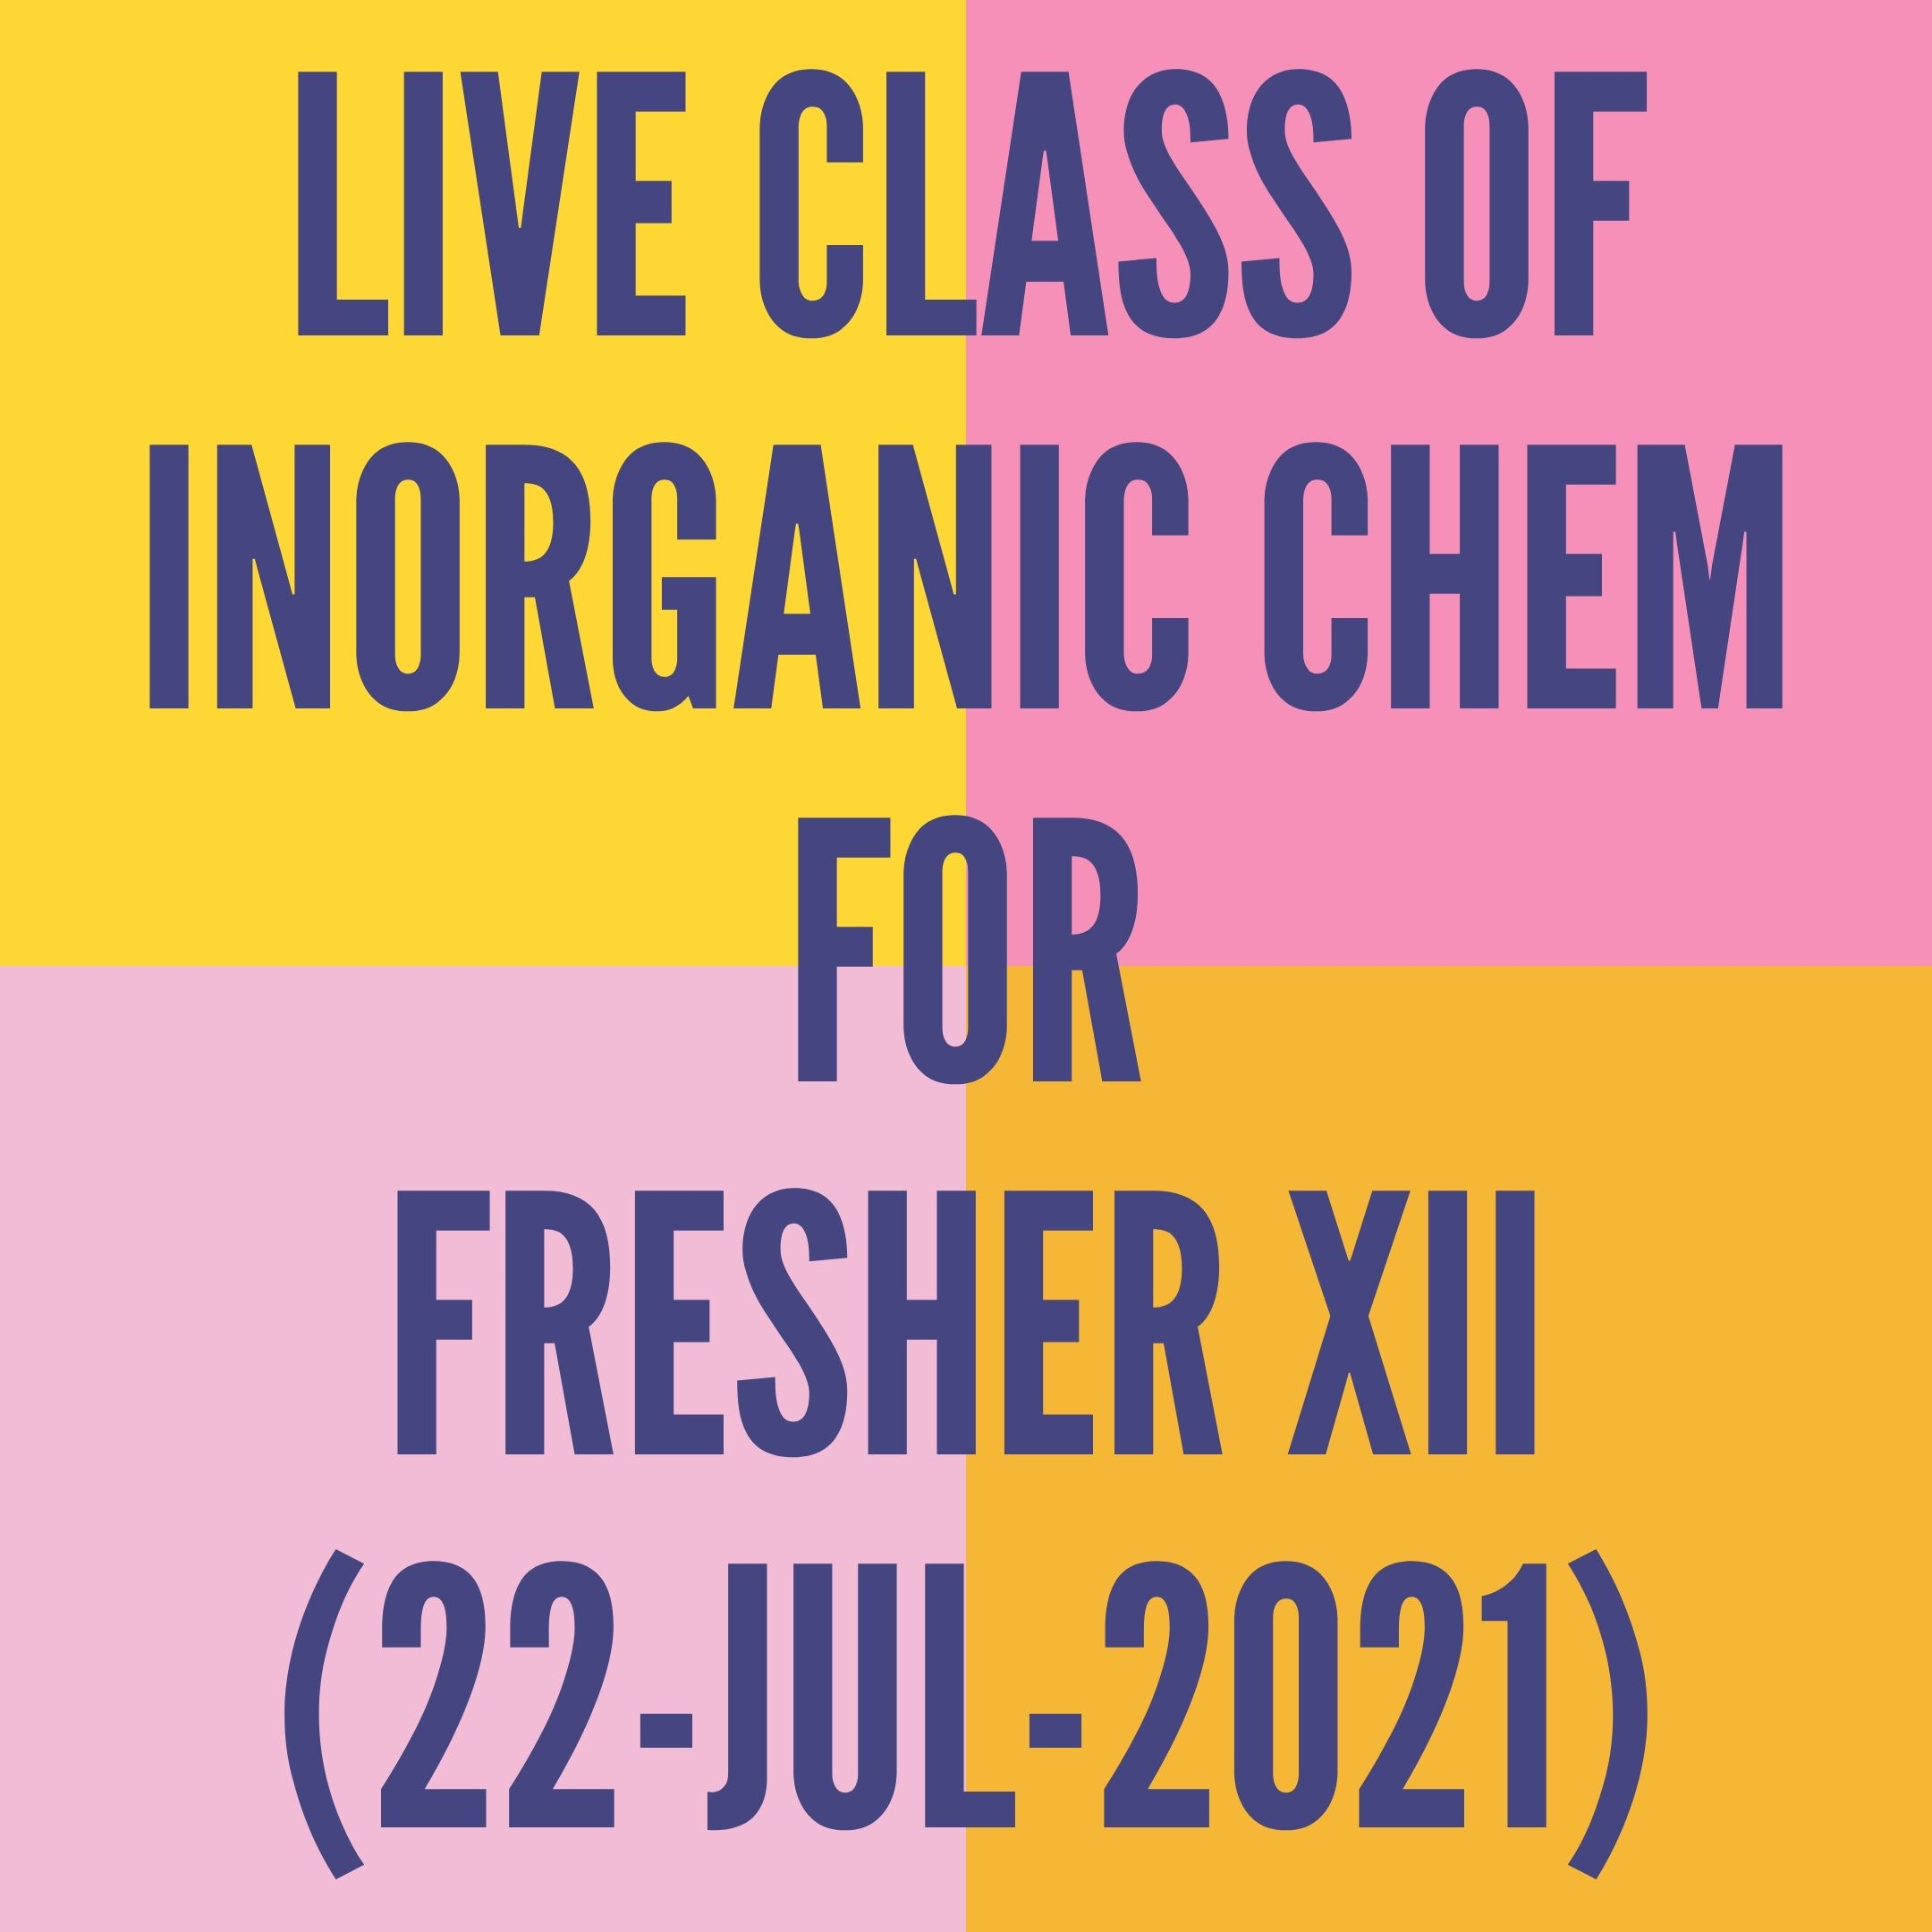 LIVE CLASS OF INORGANIC CHEMISTRY FOR FRESHER XII (22-JUL-2021) D-BLOCK